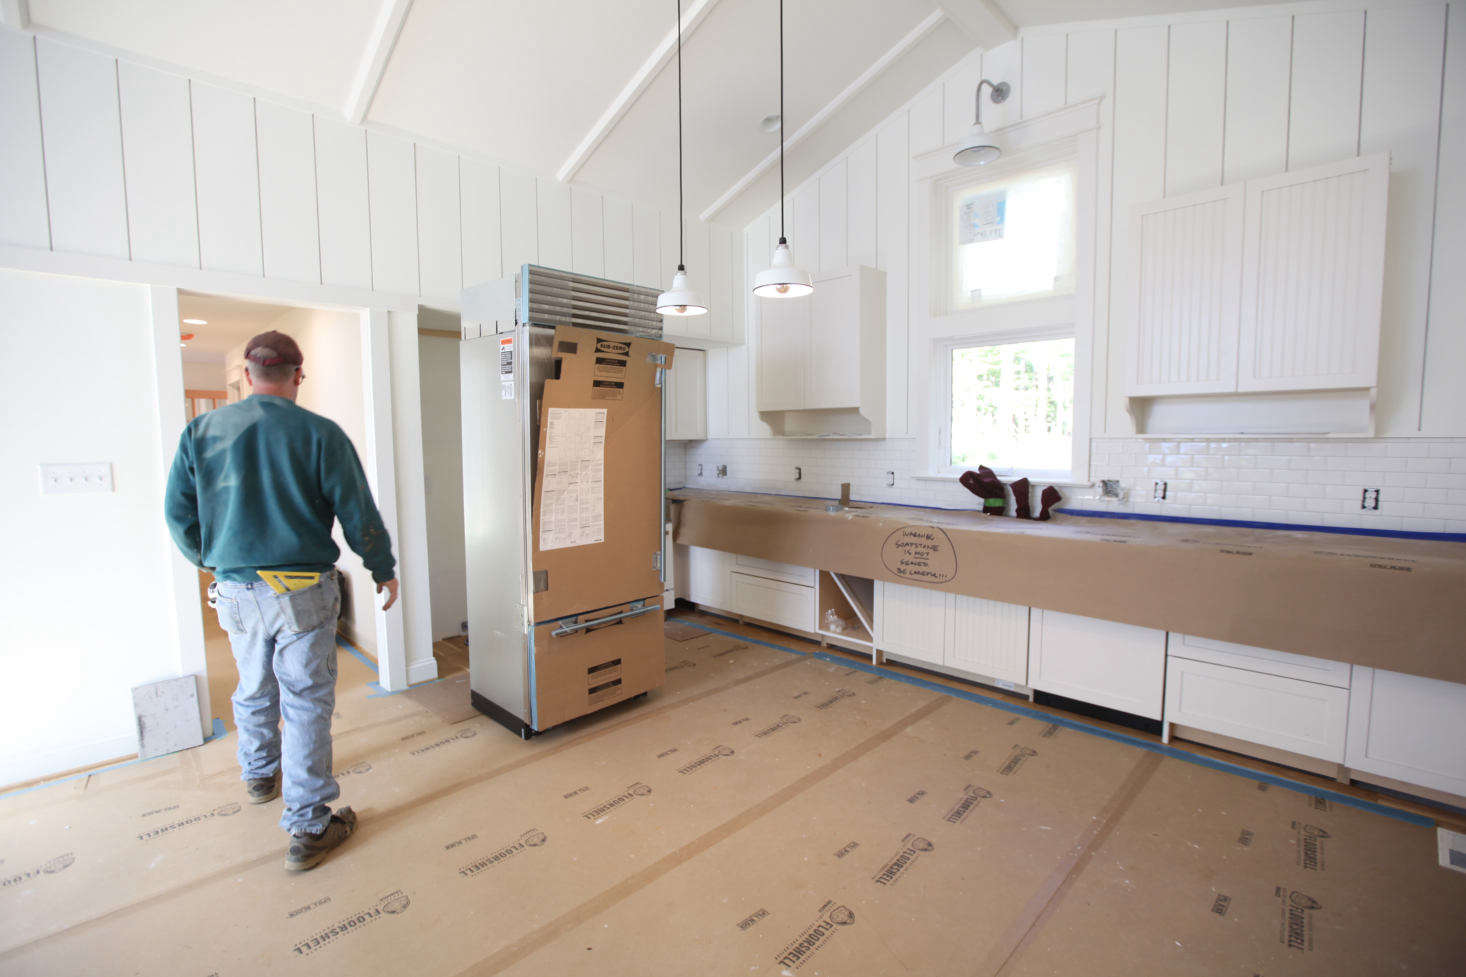 Appliance install in a kitchen with FloorShell protection on floors andX-Paper on the soapstone countertops. X-Paper is 1½ times thicker than standard contractor's paper.